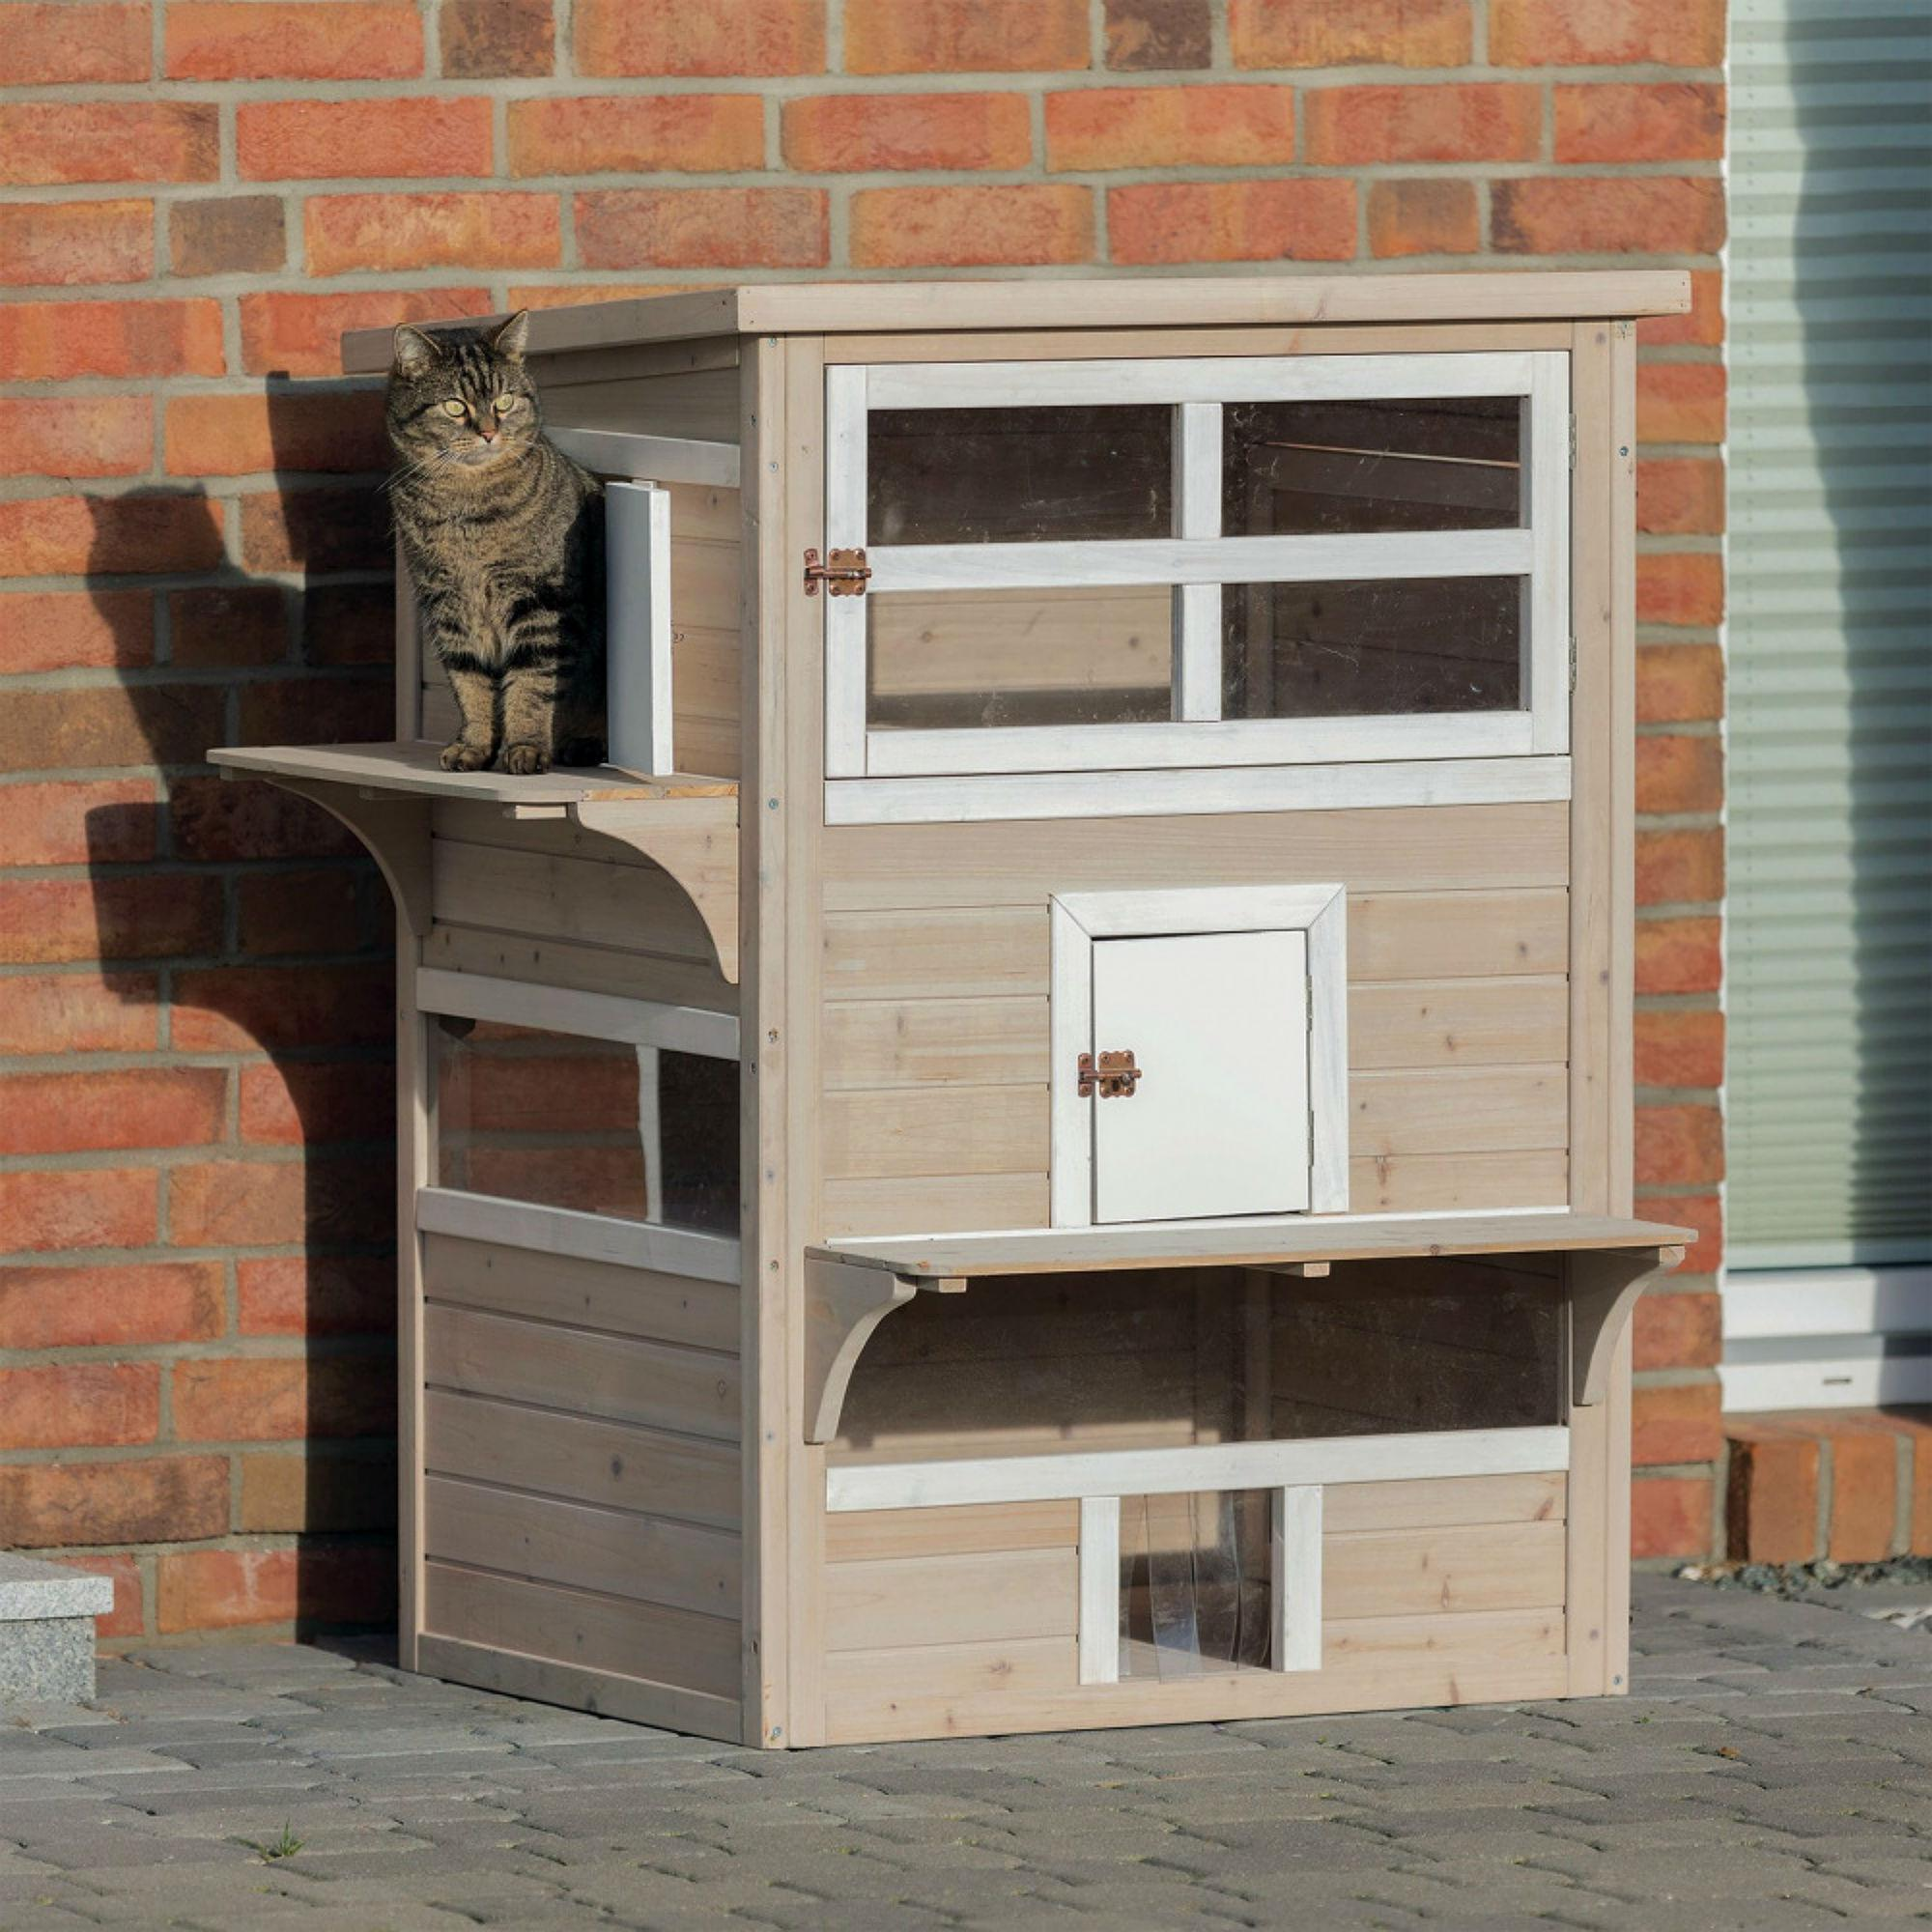 Trixie 3-Story Wooden Cat House With Basking Platform